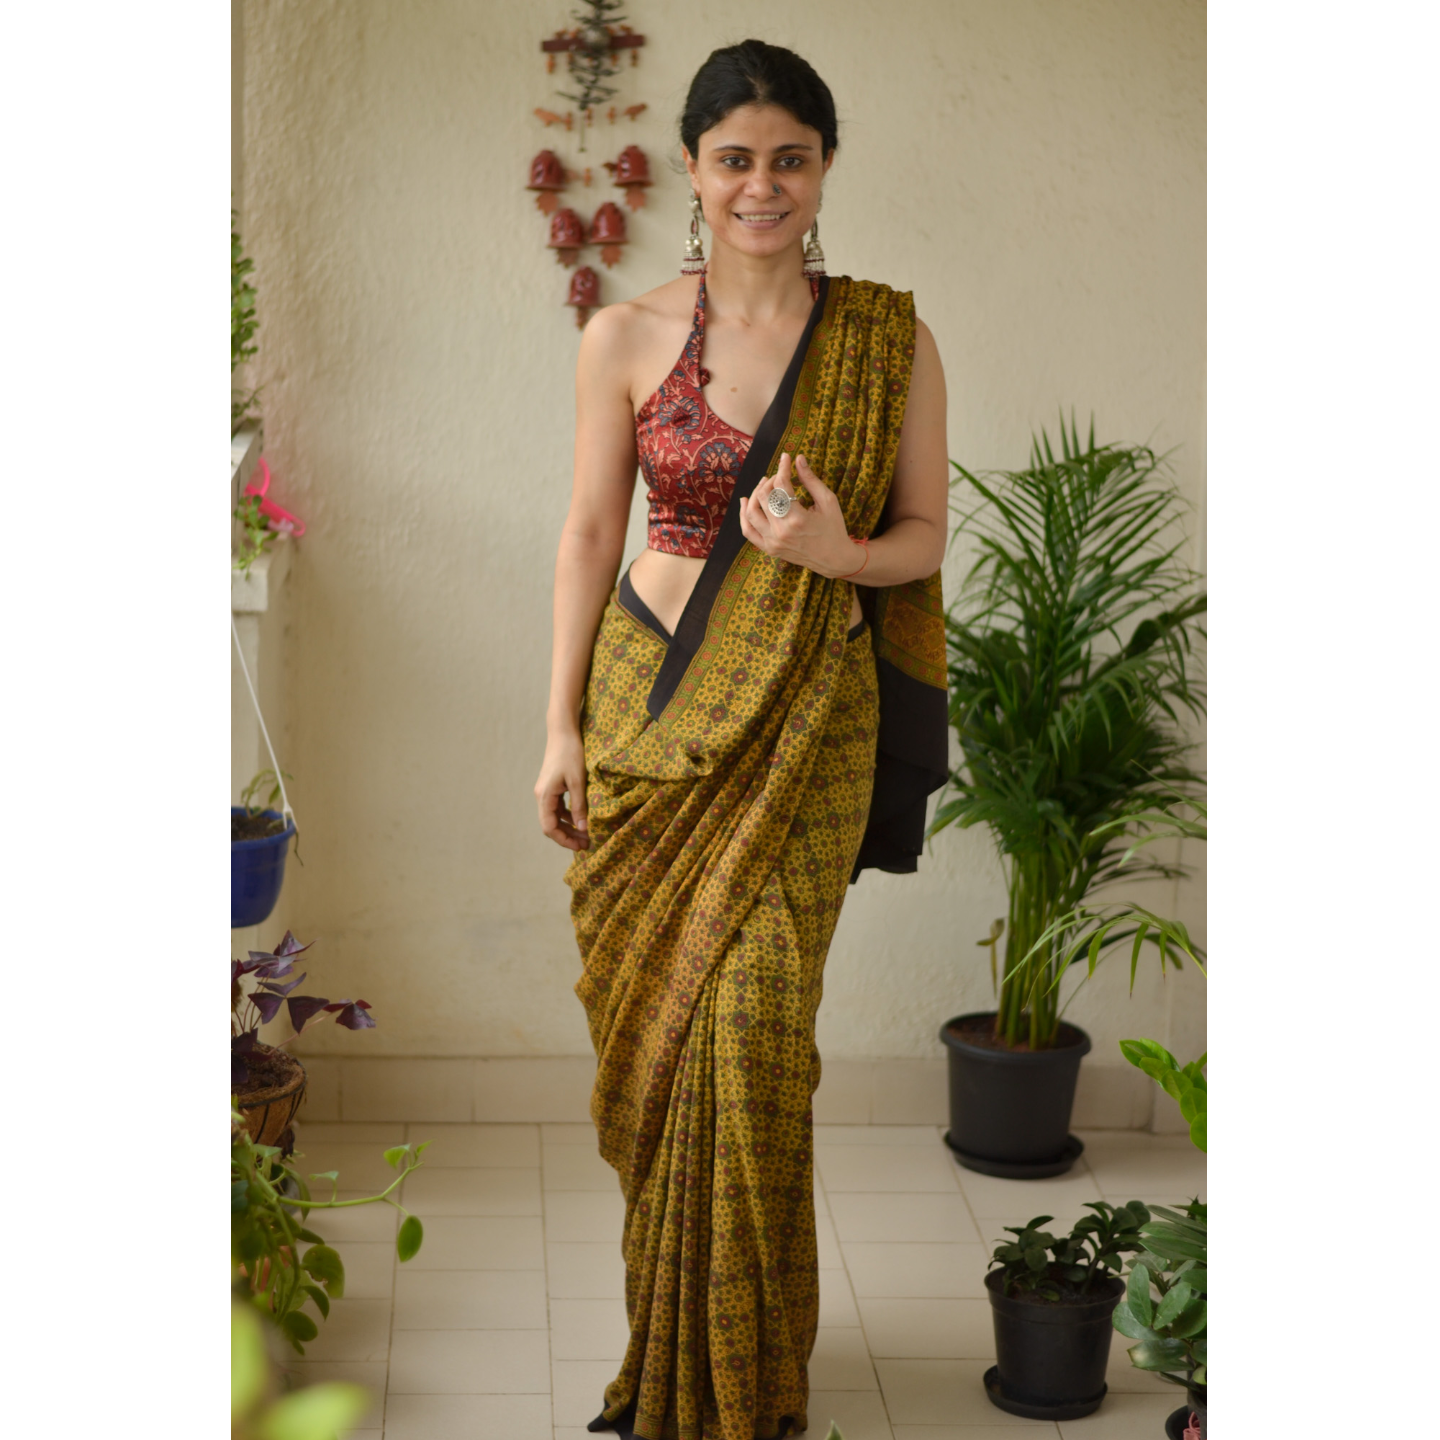 Small Handblock printed and handmade natural dyed Crepe silk Ajrakh  saree.